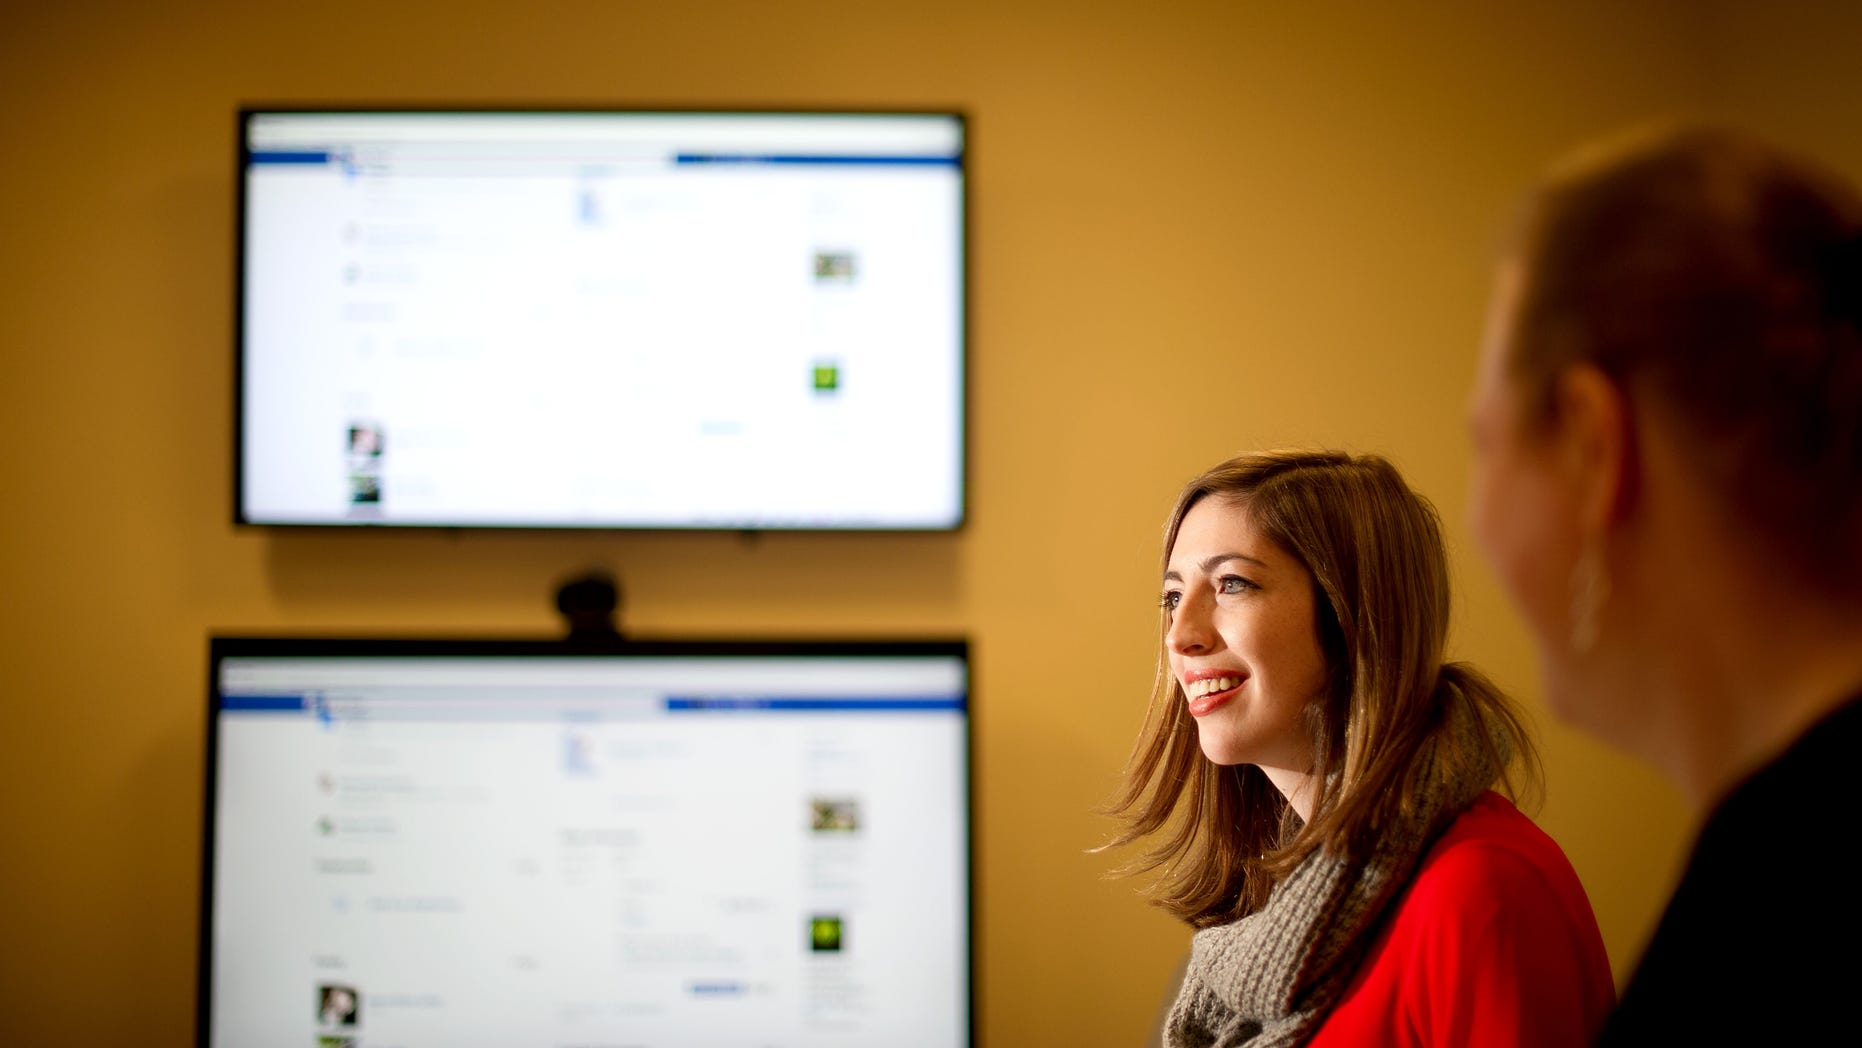 In this Wednesday, Feb. 12, 2014, photo, Facebook product manager Lexi Ross discusses expanded options for gender identification at her company's Menlo Park, Calif., headquarters. Facebook announced Thursday it is adding a customizable profile option with about 50 different terms people can use to identify their gender. (AP)